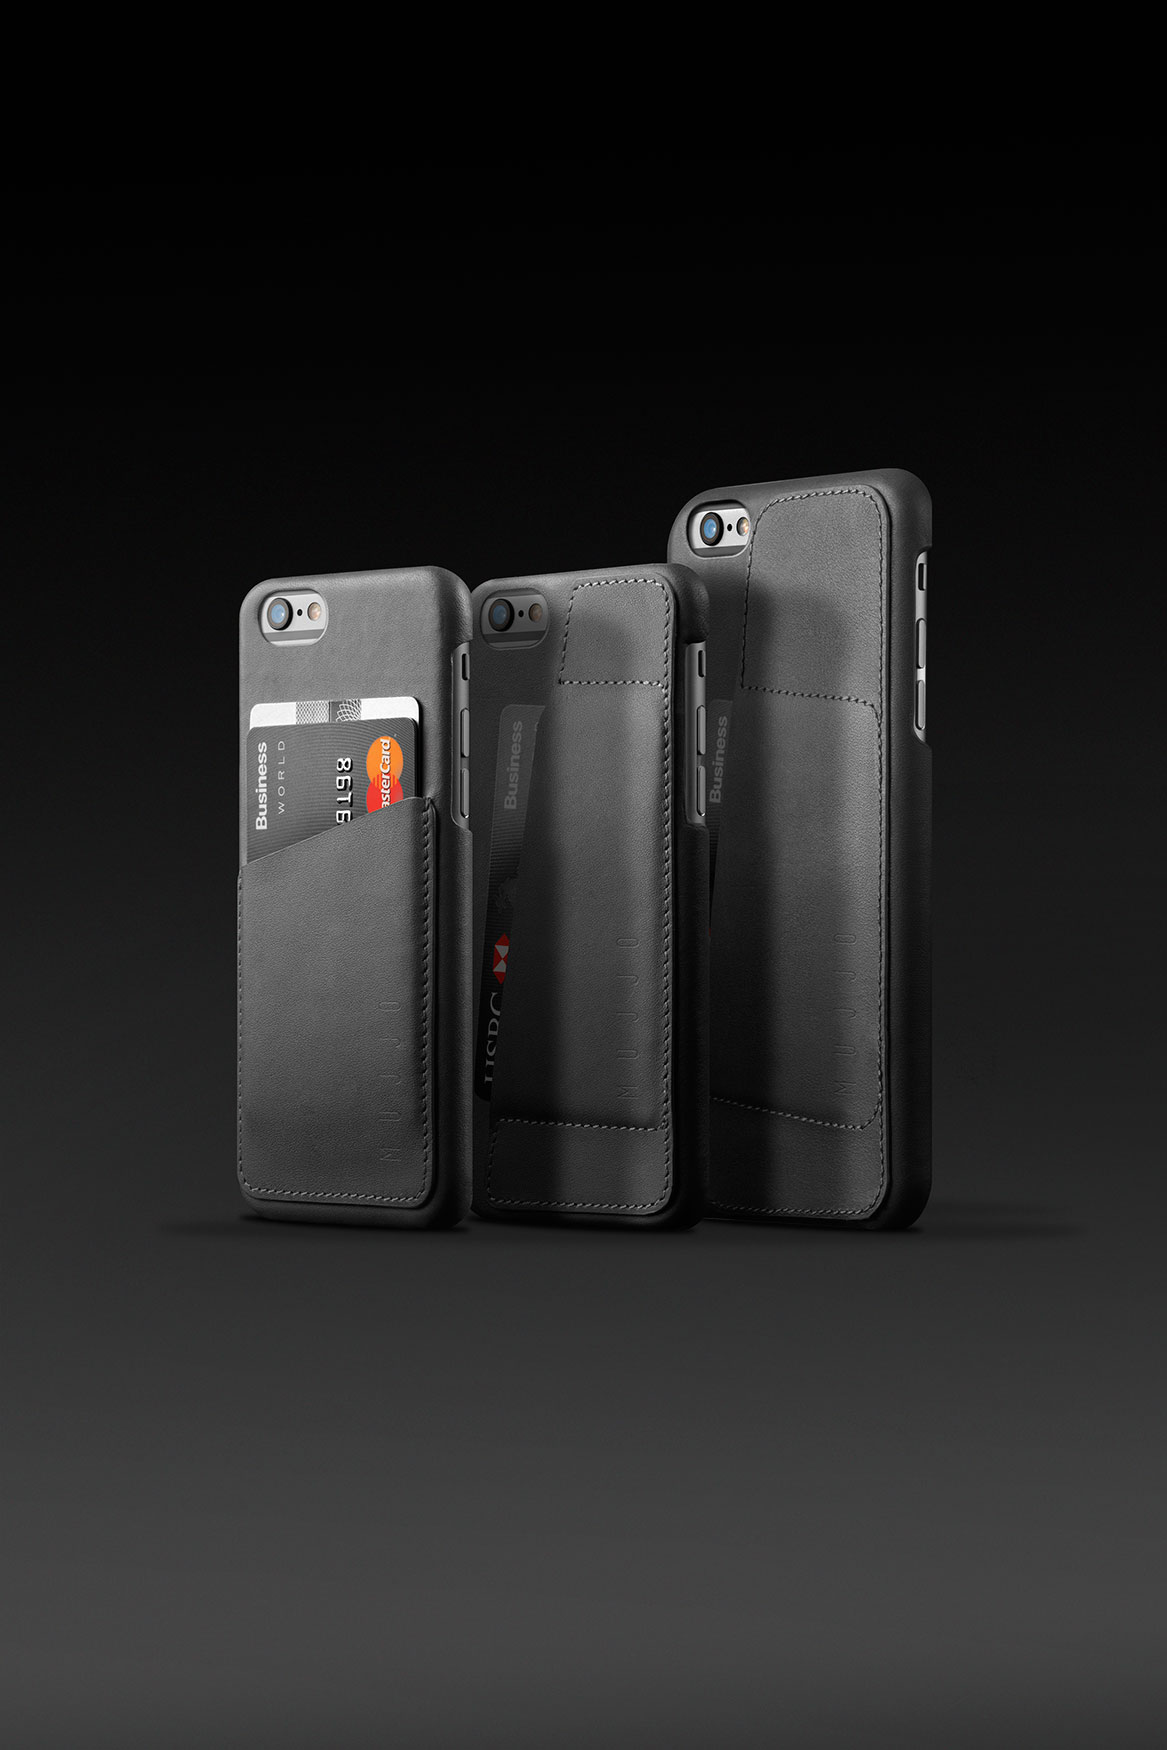 Mujjo Introduces the Leather Wallet Case line-up for iPhone 6   6 ... b6e8e77353644